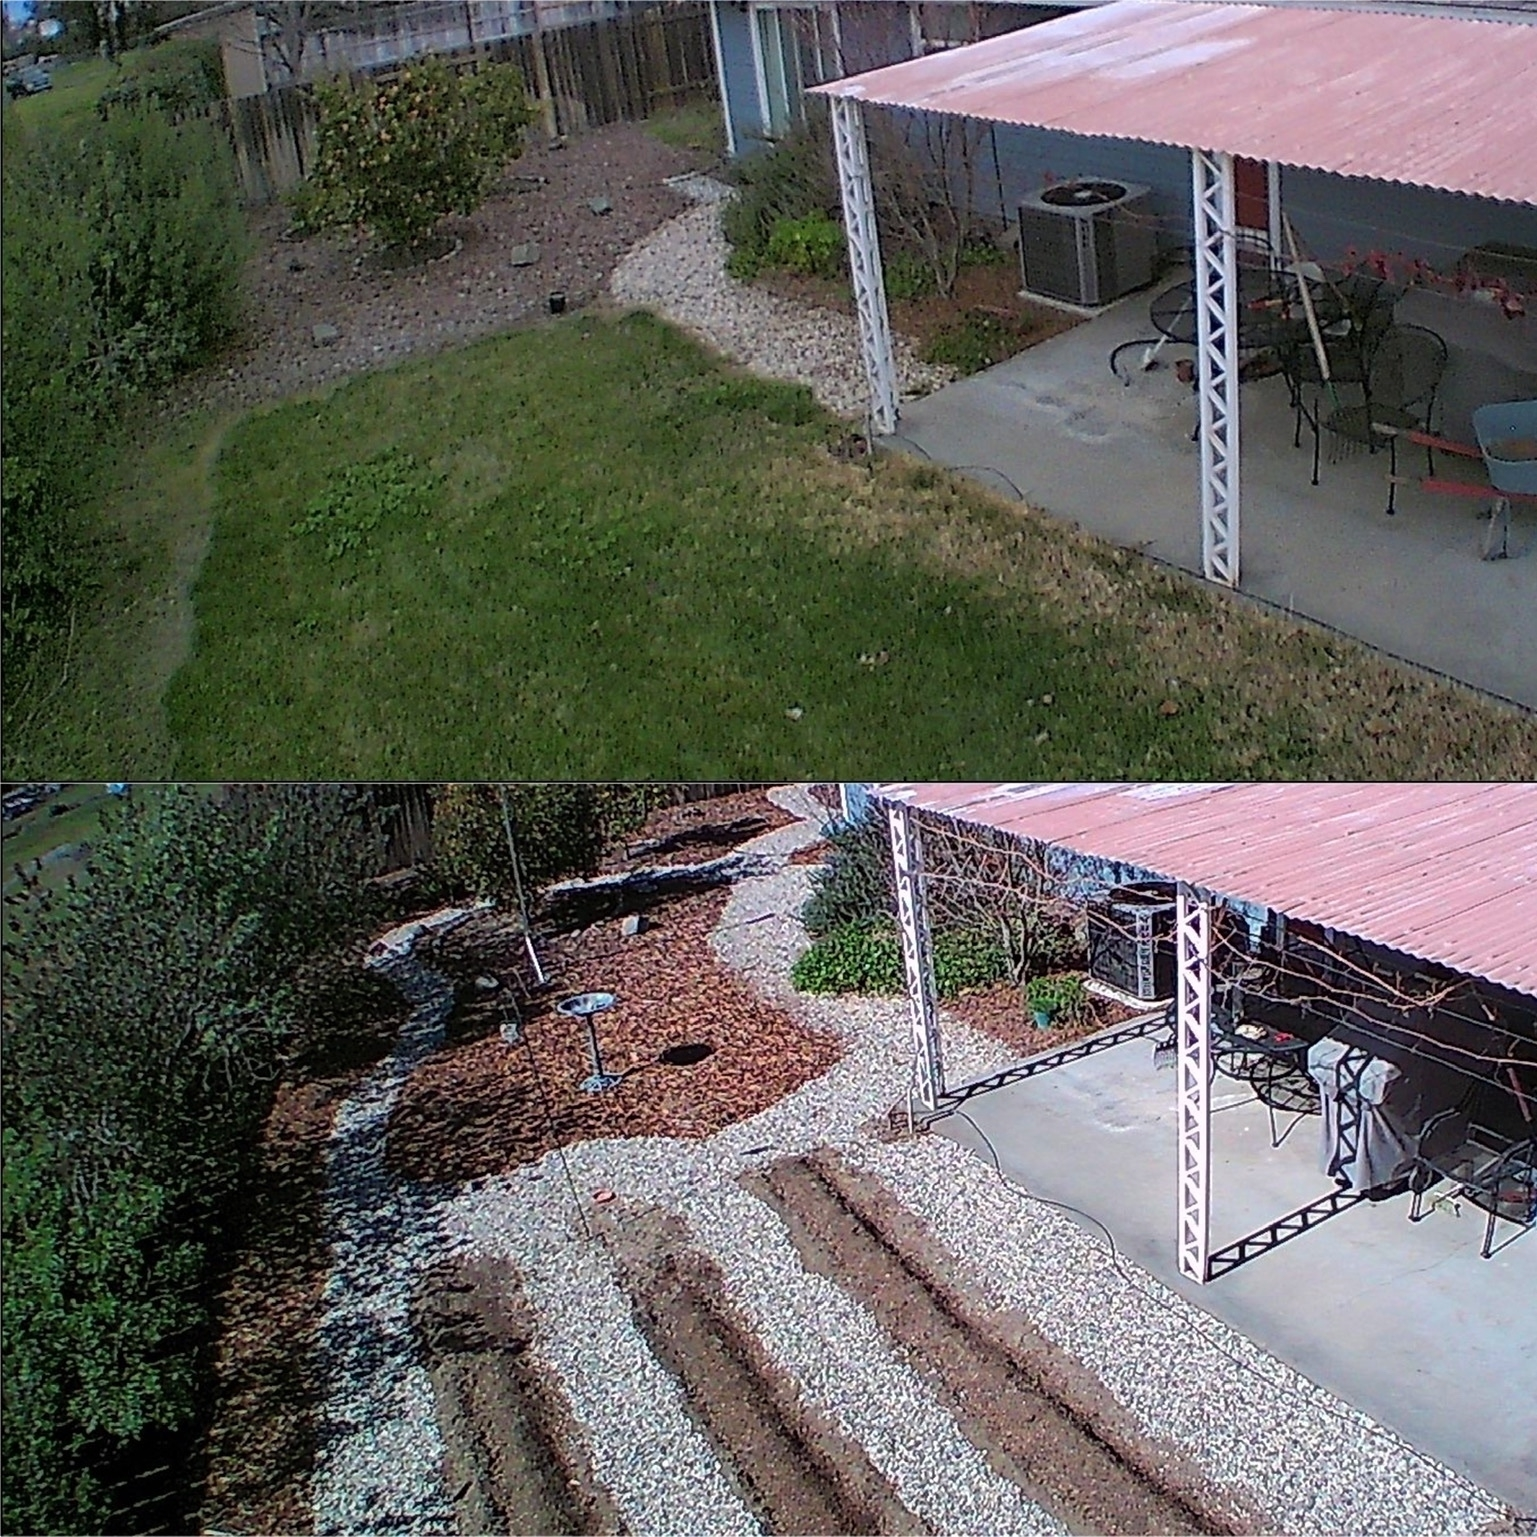 Jan 2020 photo of lawn on top and then a 2021 photo of new garden rows at the bottom